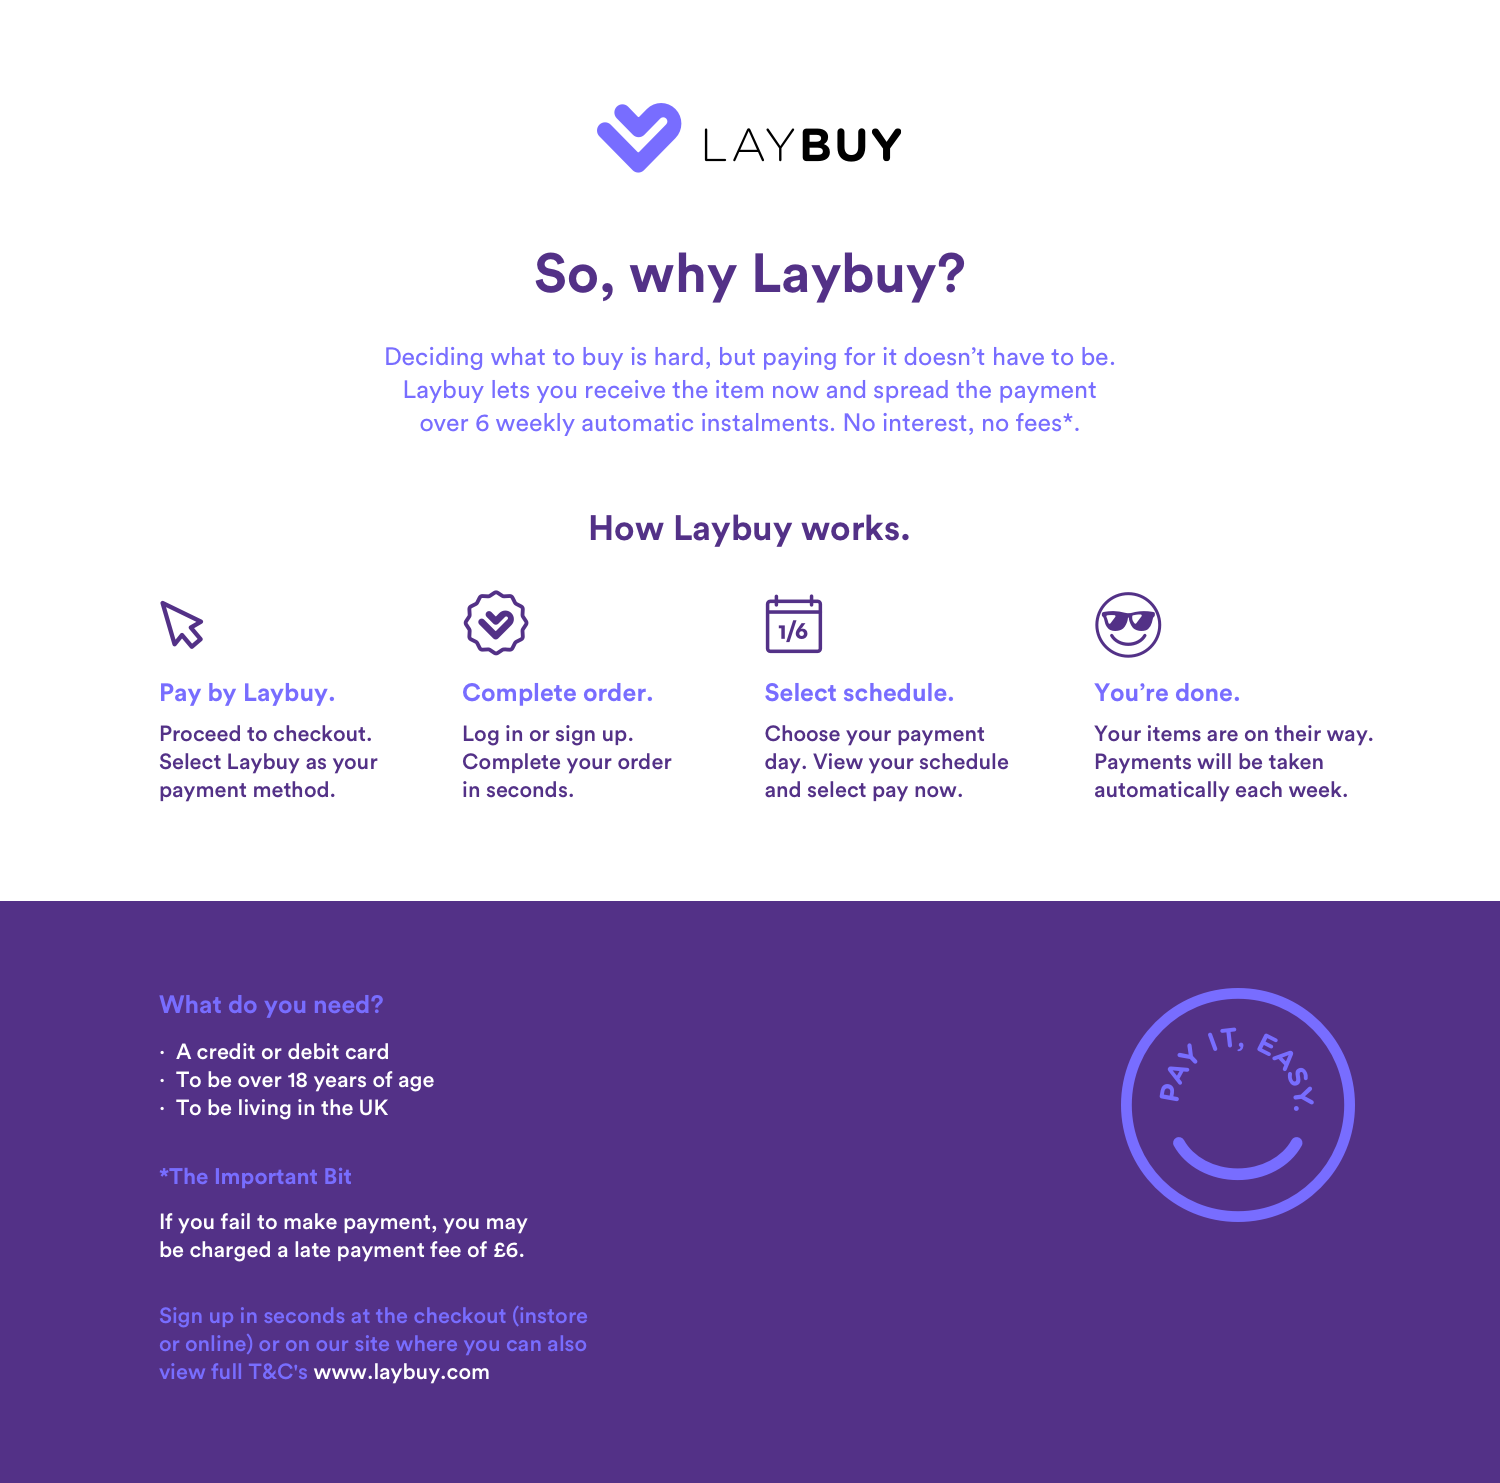 About LayBuy